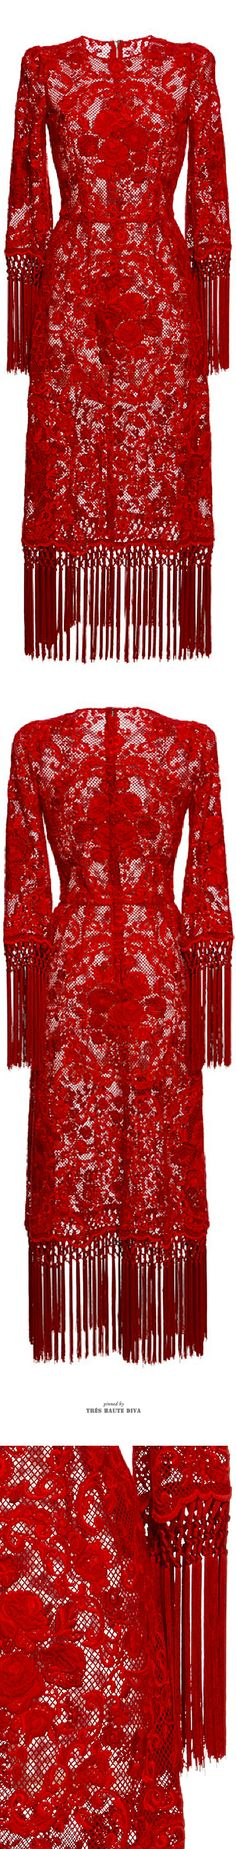 Dolce & Gabbana Rose Embroidered Netted Dress With Fringe Trim SS 2015